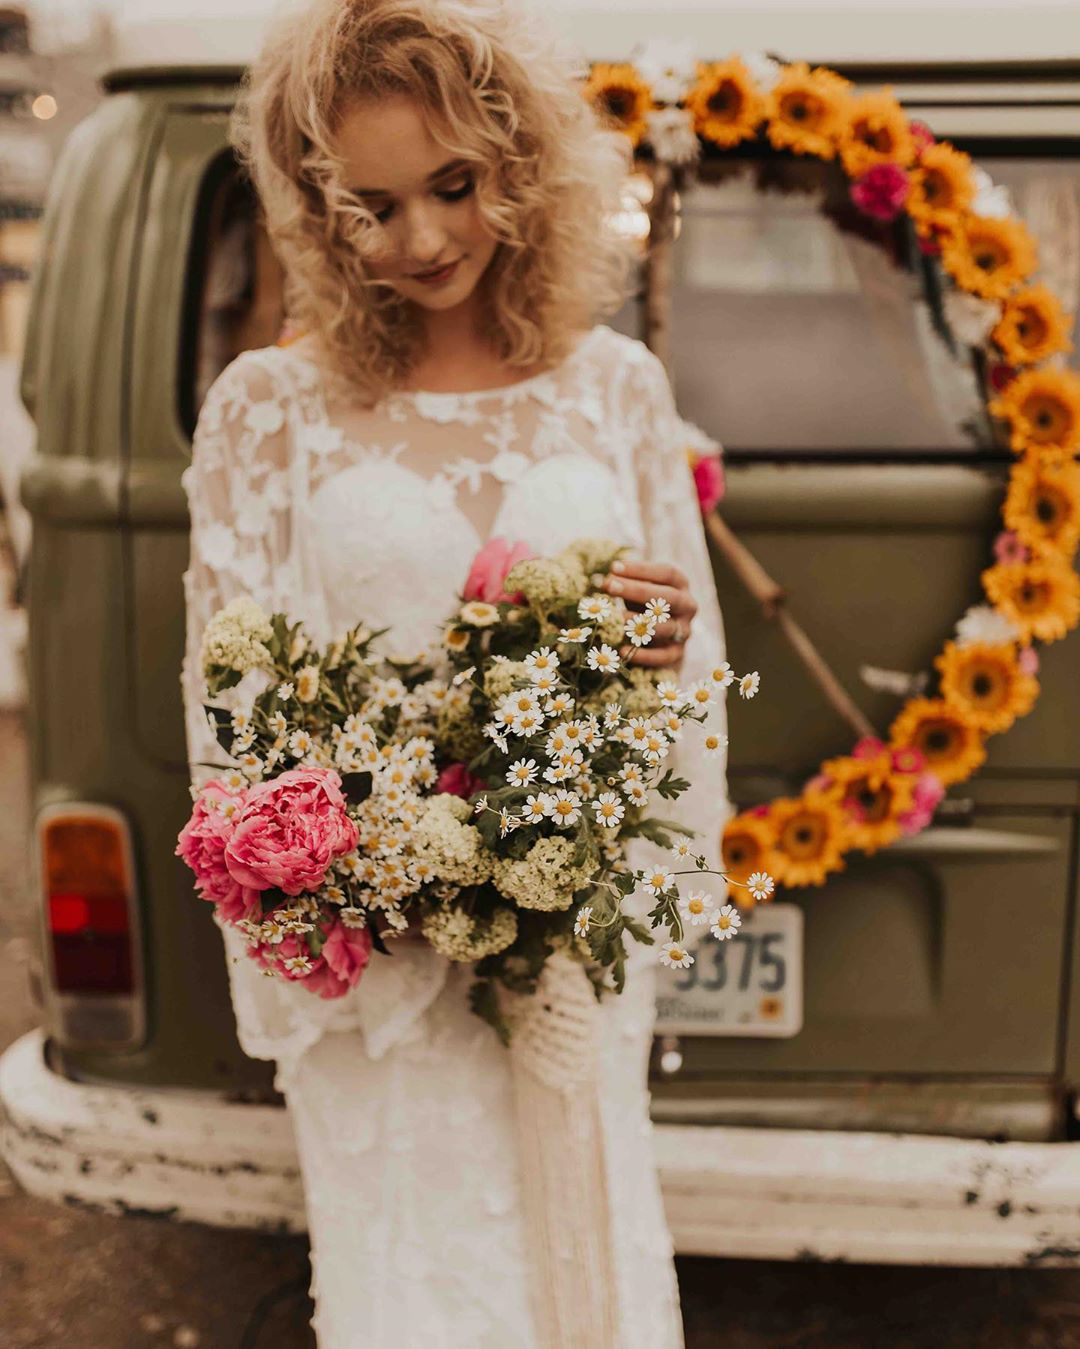 {hippie chic} . . photo | @shelbyrosephoto  planning | @wildandwedplanning  florals | @lotusfloraldesigns  photo bus | @anamericanroadstory  macrame | @rissa.bee  Hair | @colourbycalina  makeup | @skinandbeautybyelizabethmarie  dress | @dreamersandlovers_  model | @miriamstats